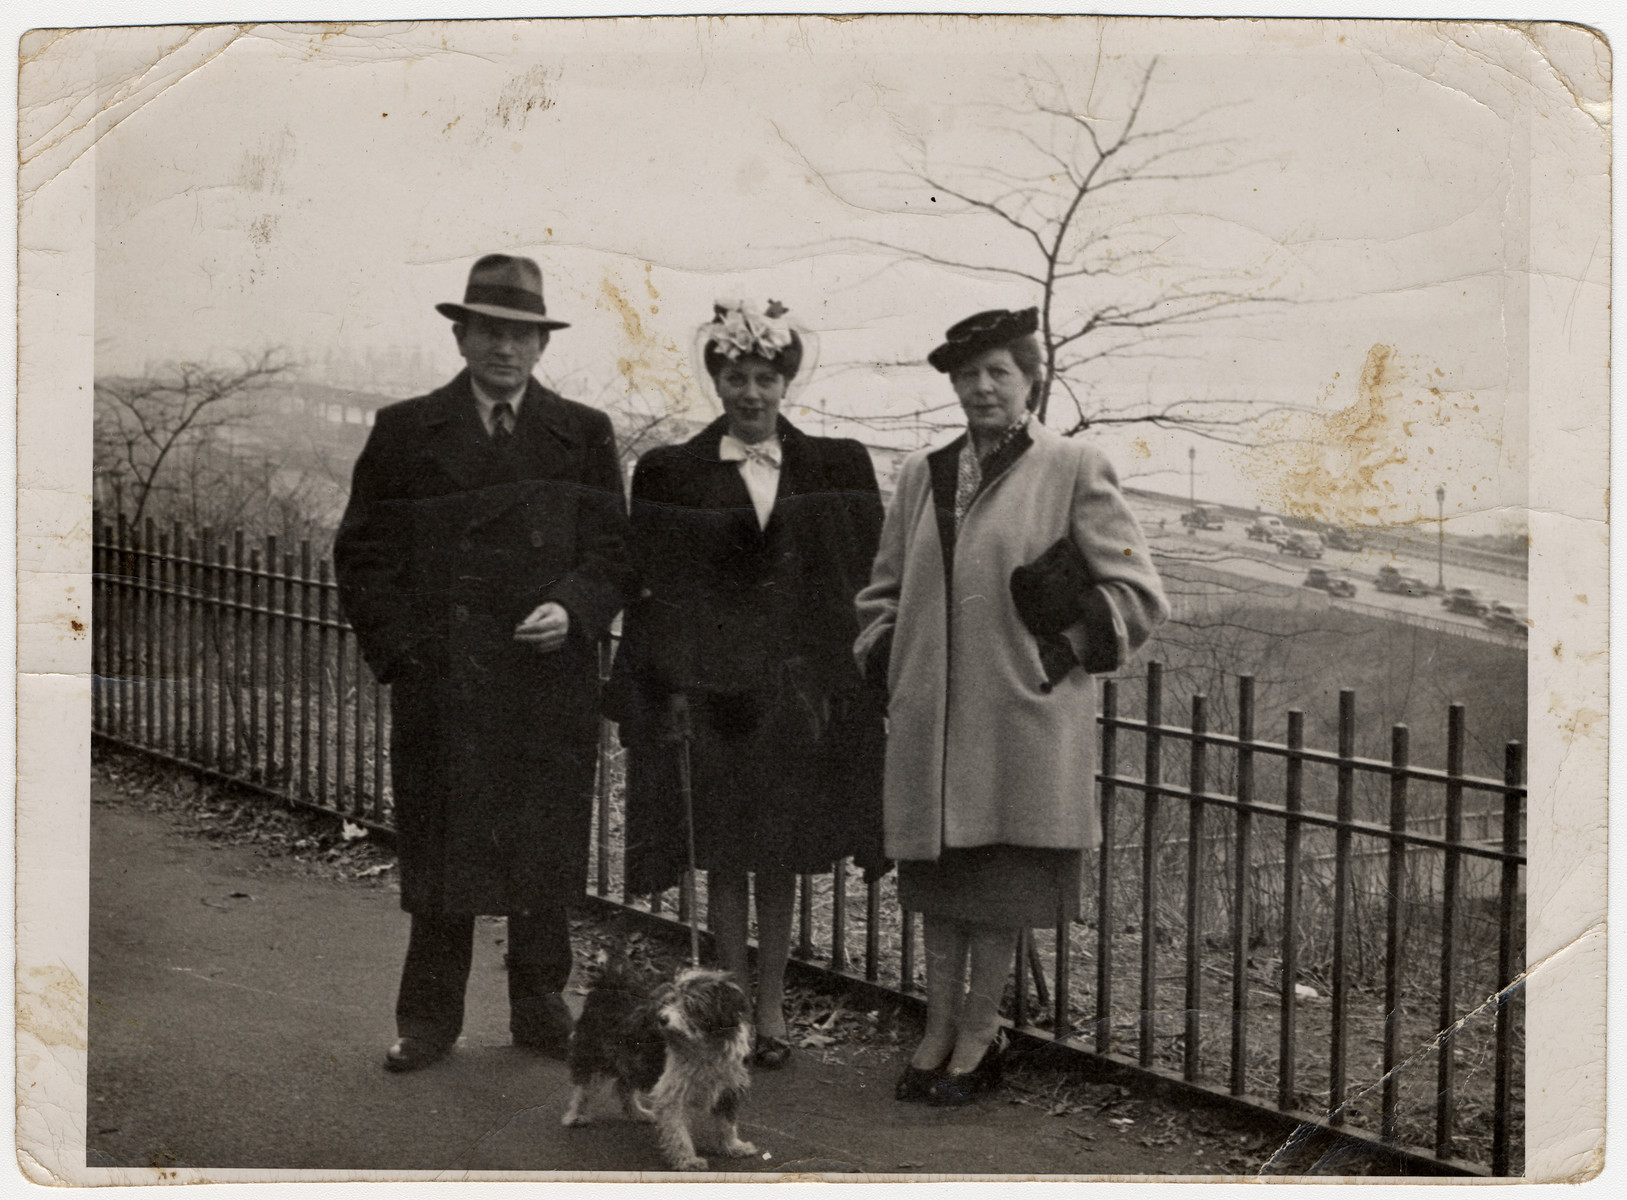 Max, Judith, and Bella Klinger pose for a photograph in the US after the war.   Max was Joel's brother.  He and his family survived as Christians during the war and came to the United States from Belgium in 1943.